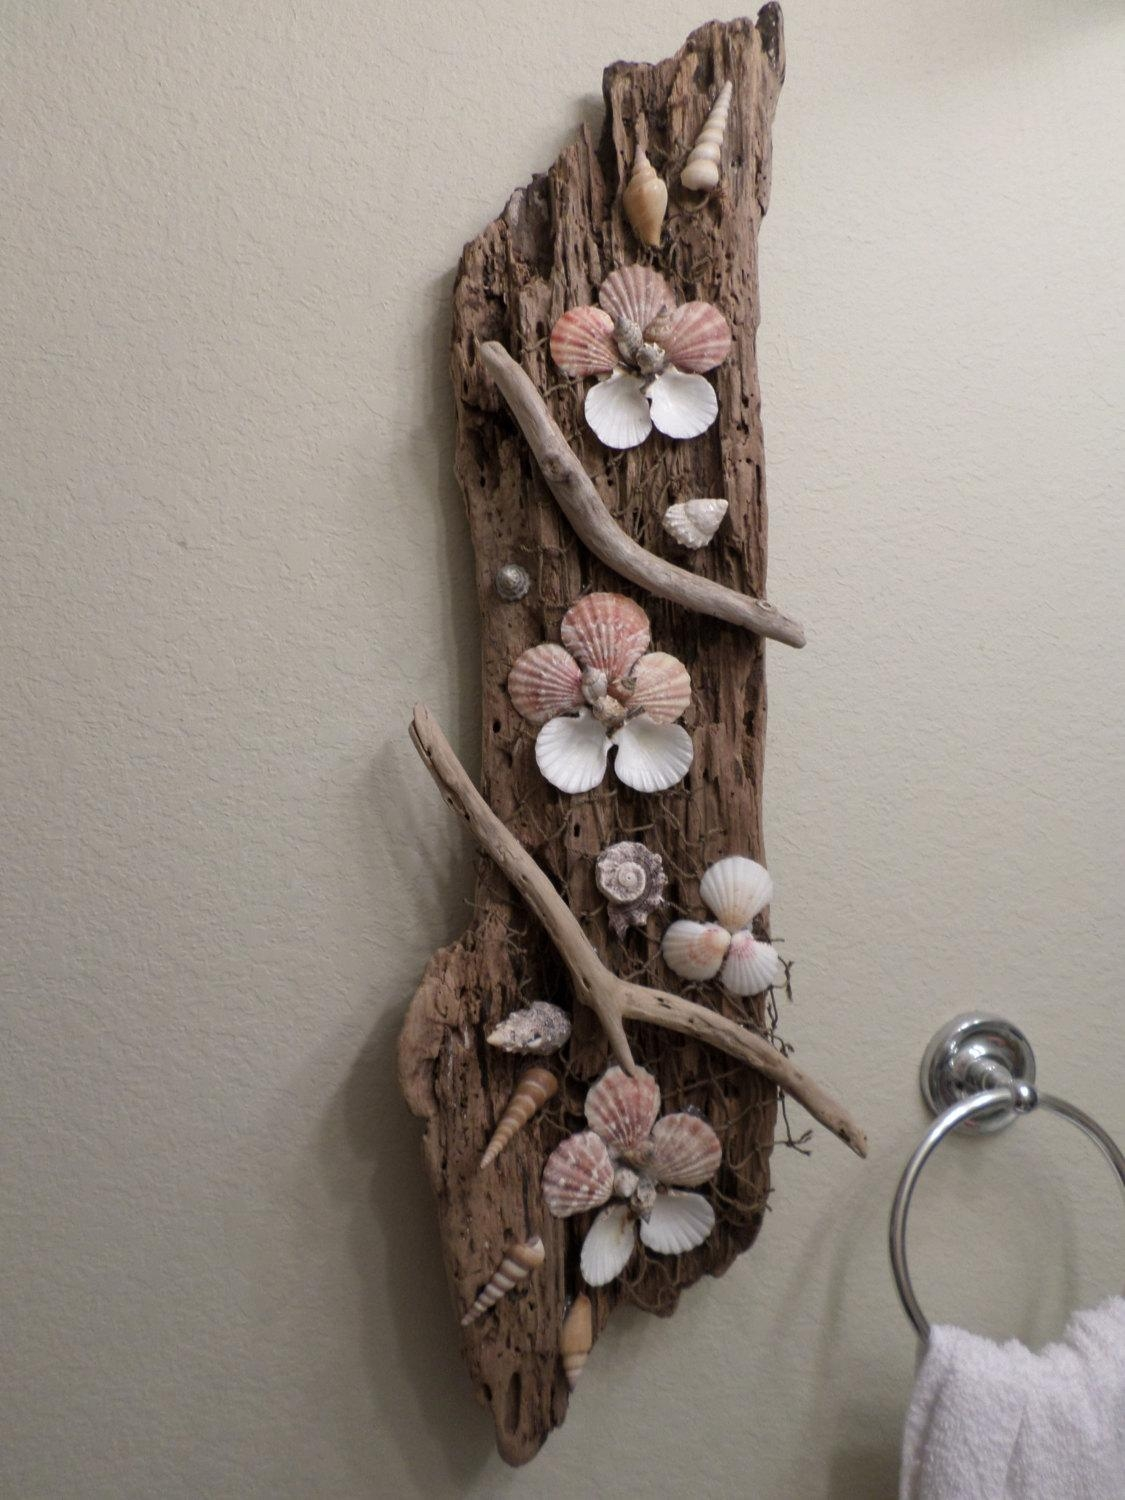 Amazing Large Driftwood Sculpture Ocean Themed Wall Art Throughout Large Driftwood Wall Art (Image 2 of 20)